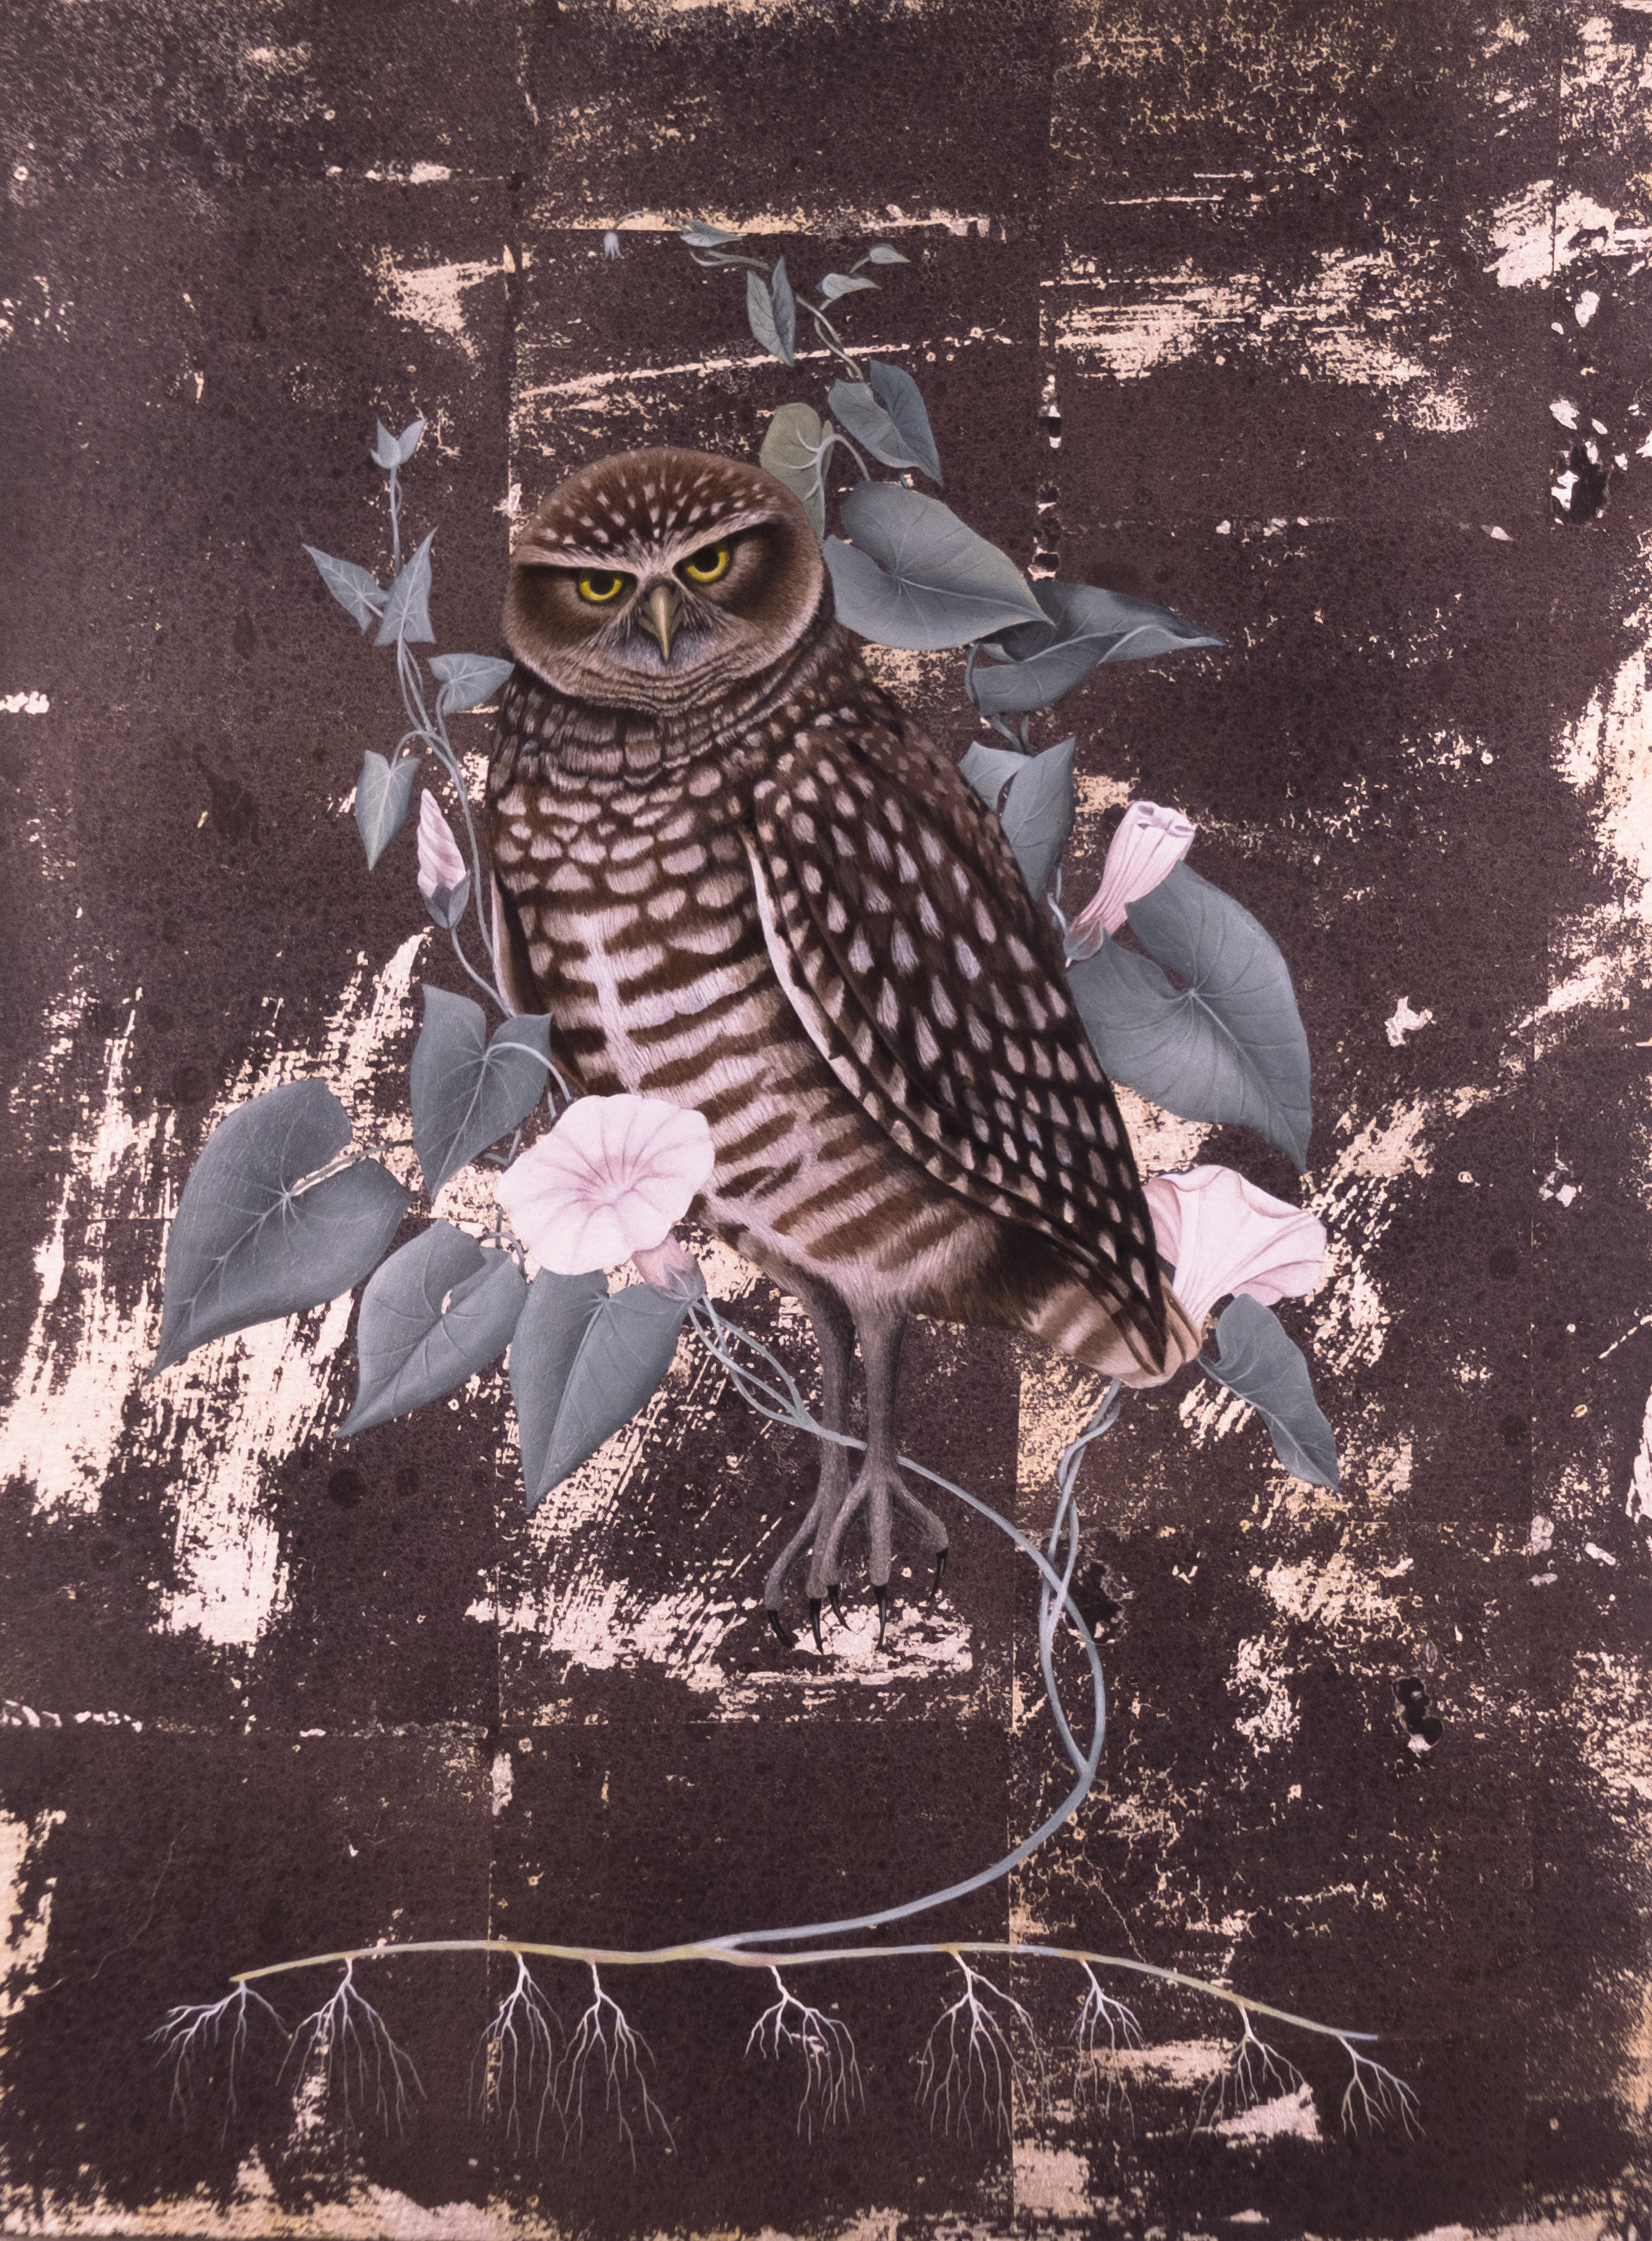 Marsha Kennedy,  Burrowing Owl with Invasive Field Bindweed , Oils, silver leaf, birch panel, 16 x 12 inches, 2017